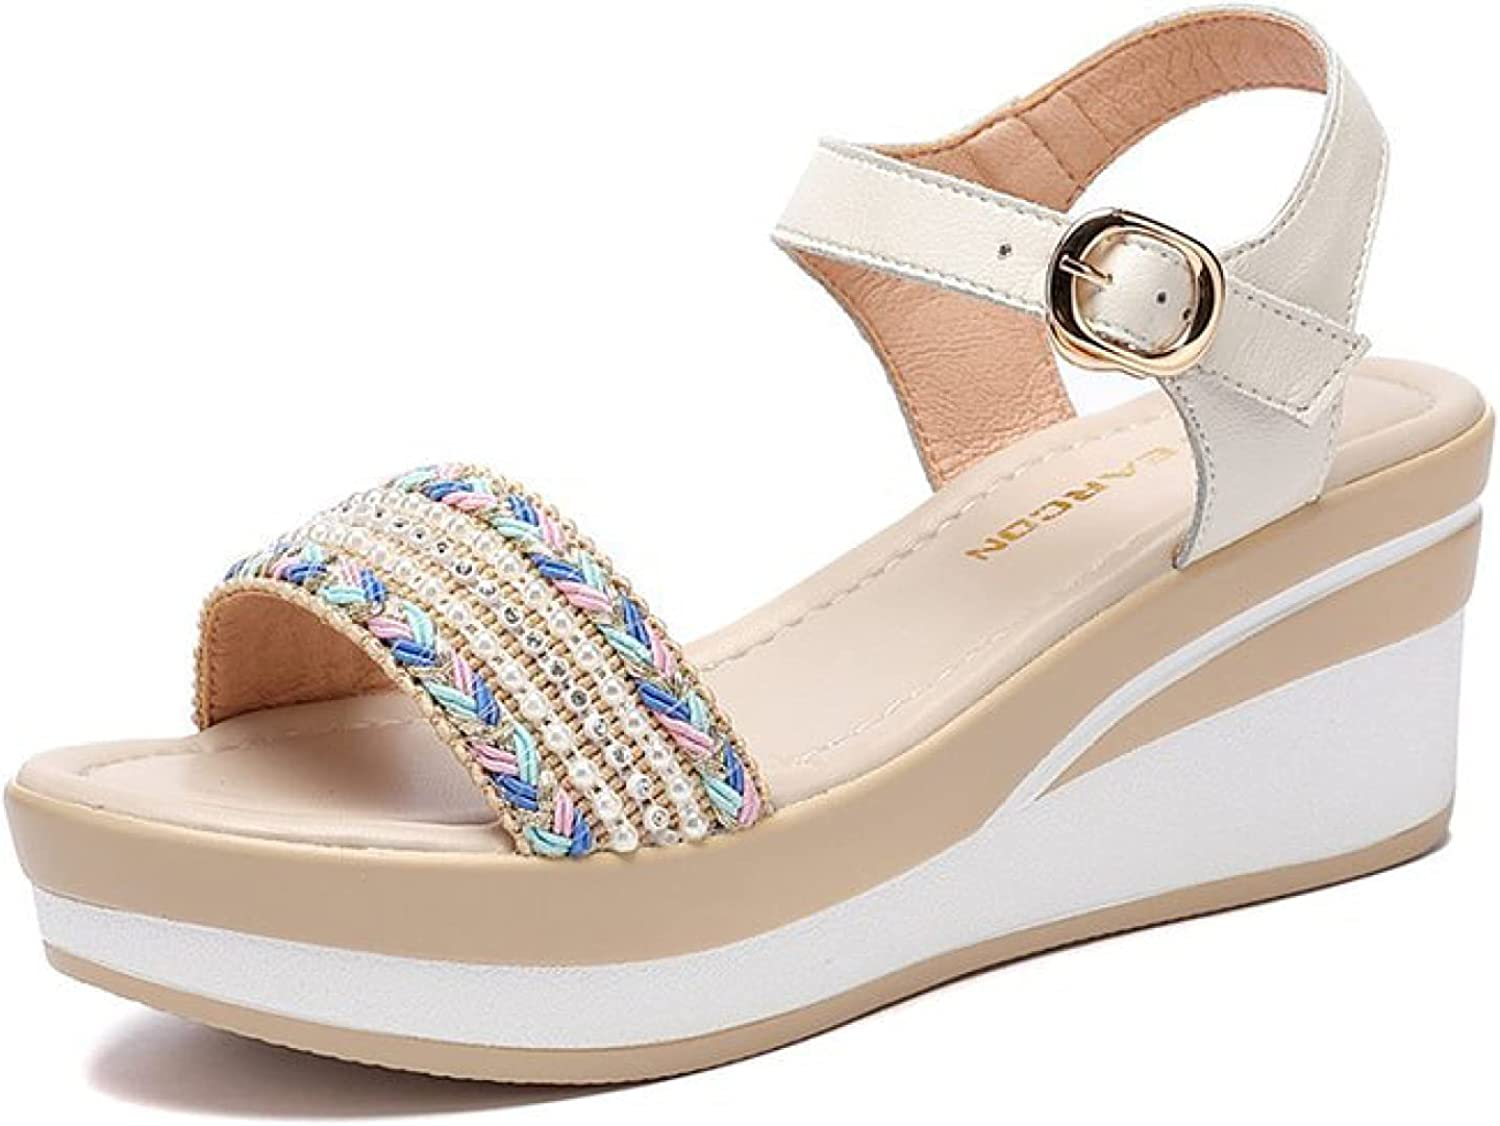 Wedge 授与 Shoes for Women 購入 Fashion Summer Pearl Rhineston Small Woven